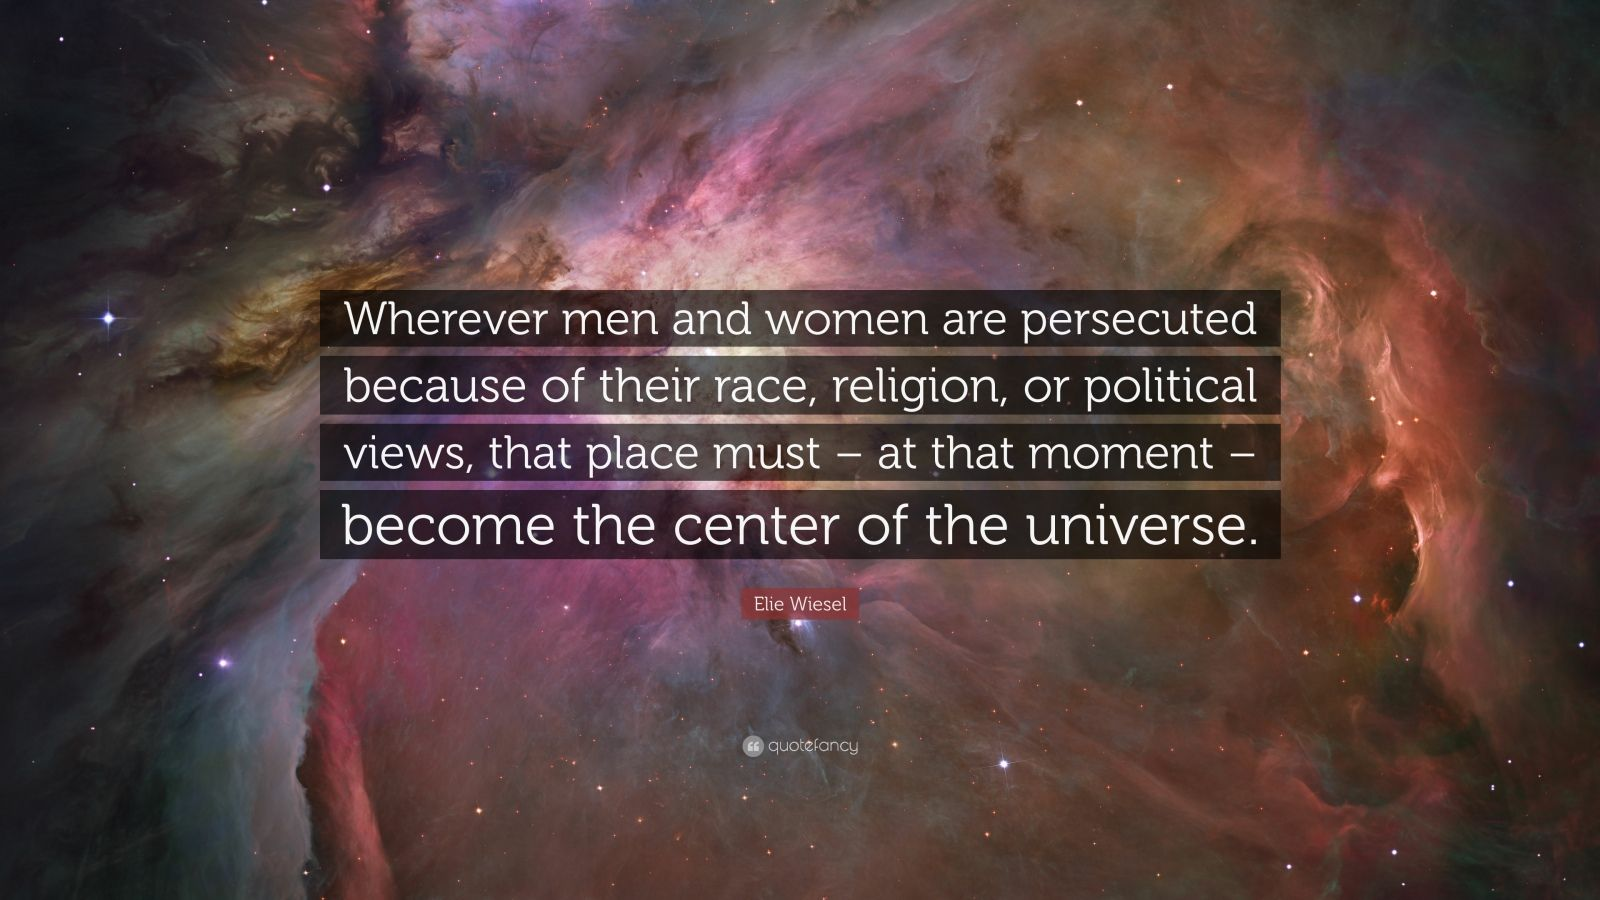 """Elie Wiesel Quote: """"Wherever men and women are persecuted because of their race, religion, or political views, that place must – at that moment – become the center of the universe."""""""